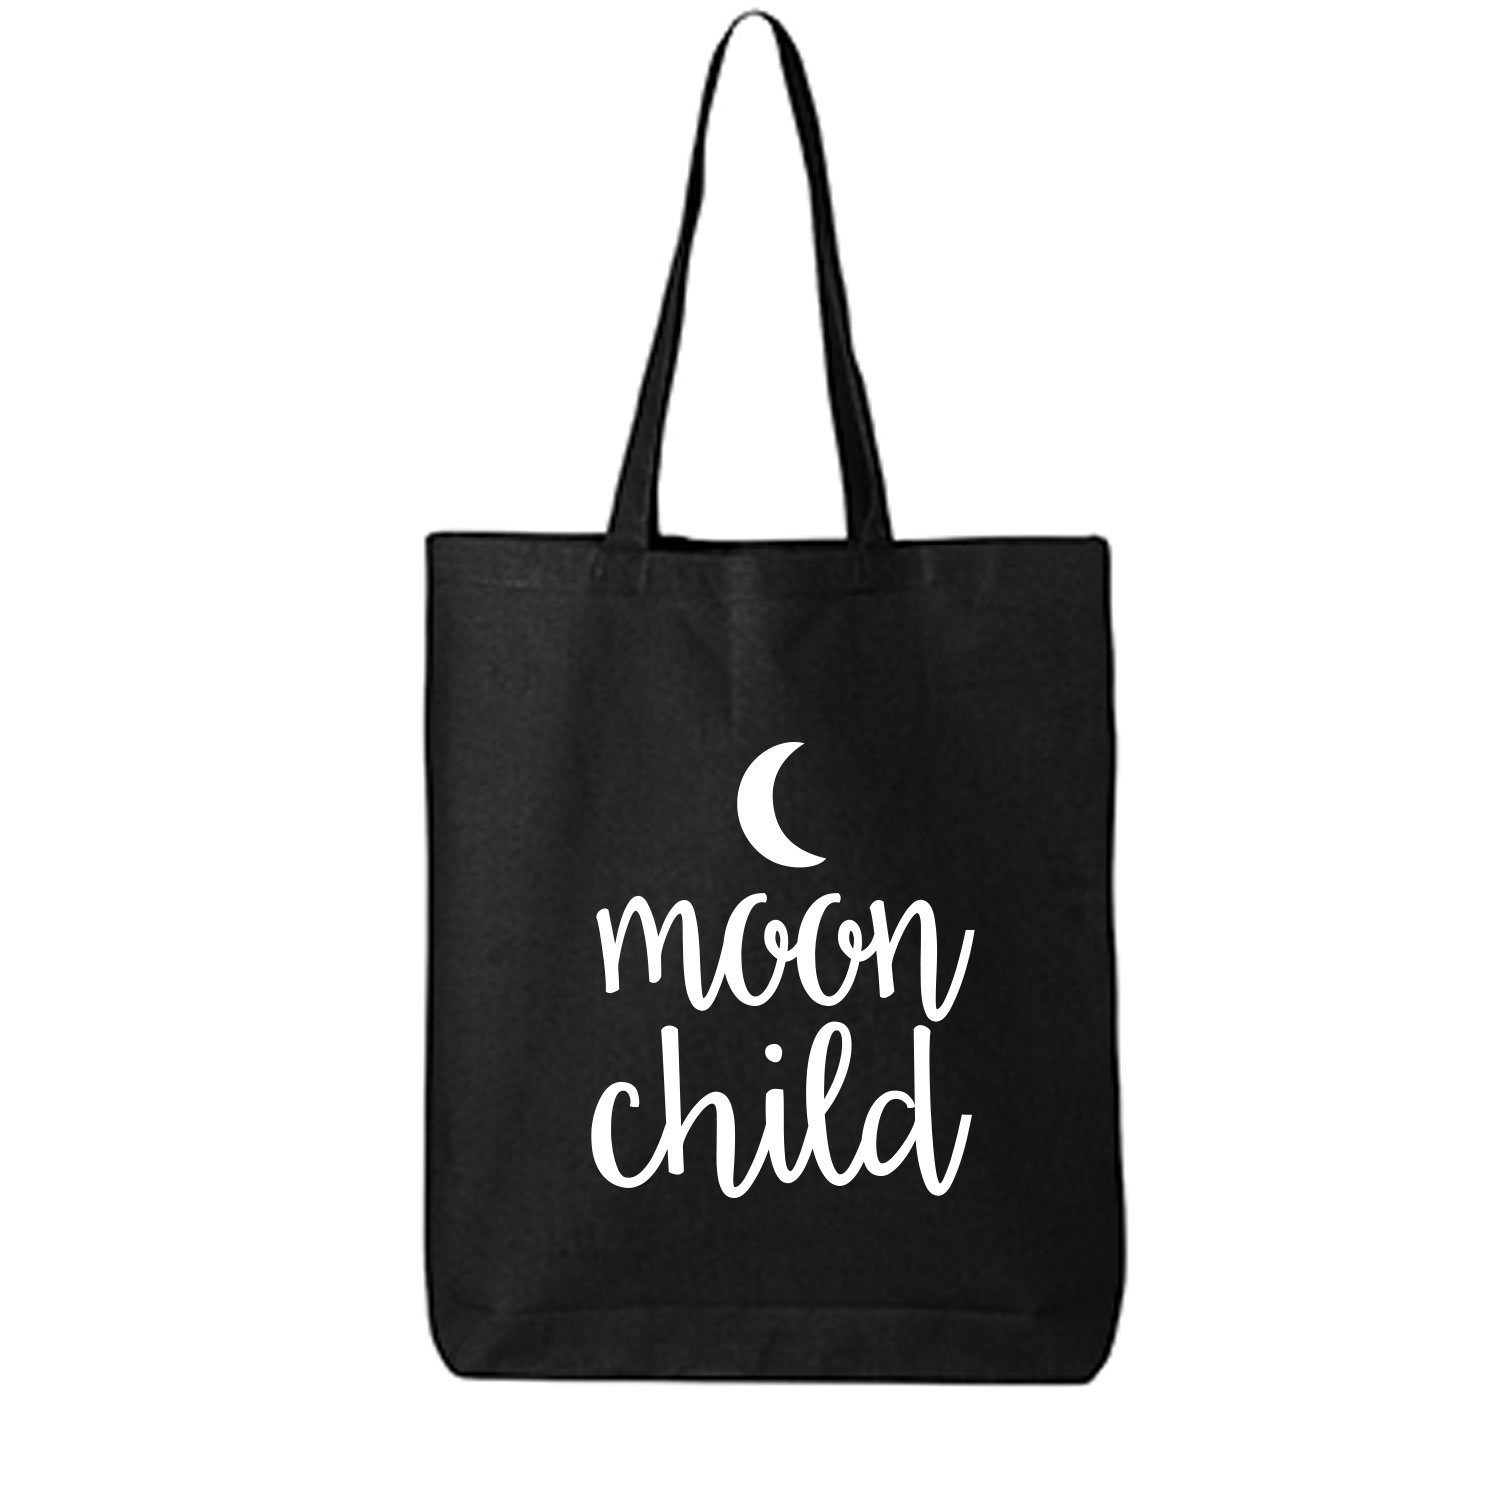 MOON CHILD Cotton Canvas Tote Bag in Black - One Size